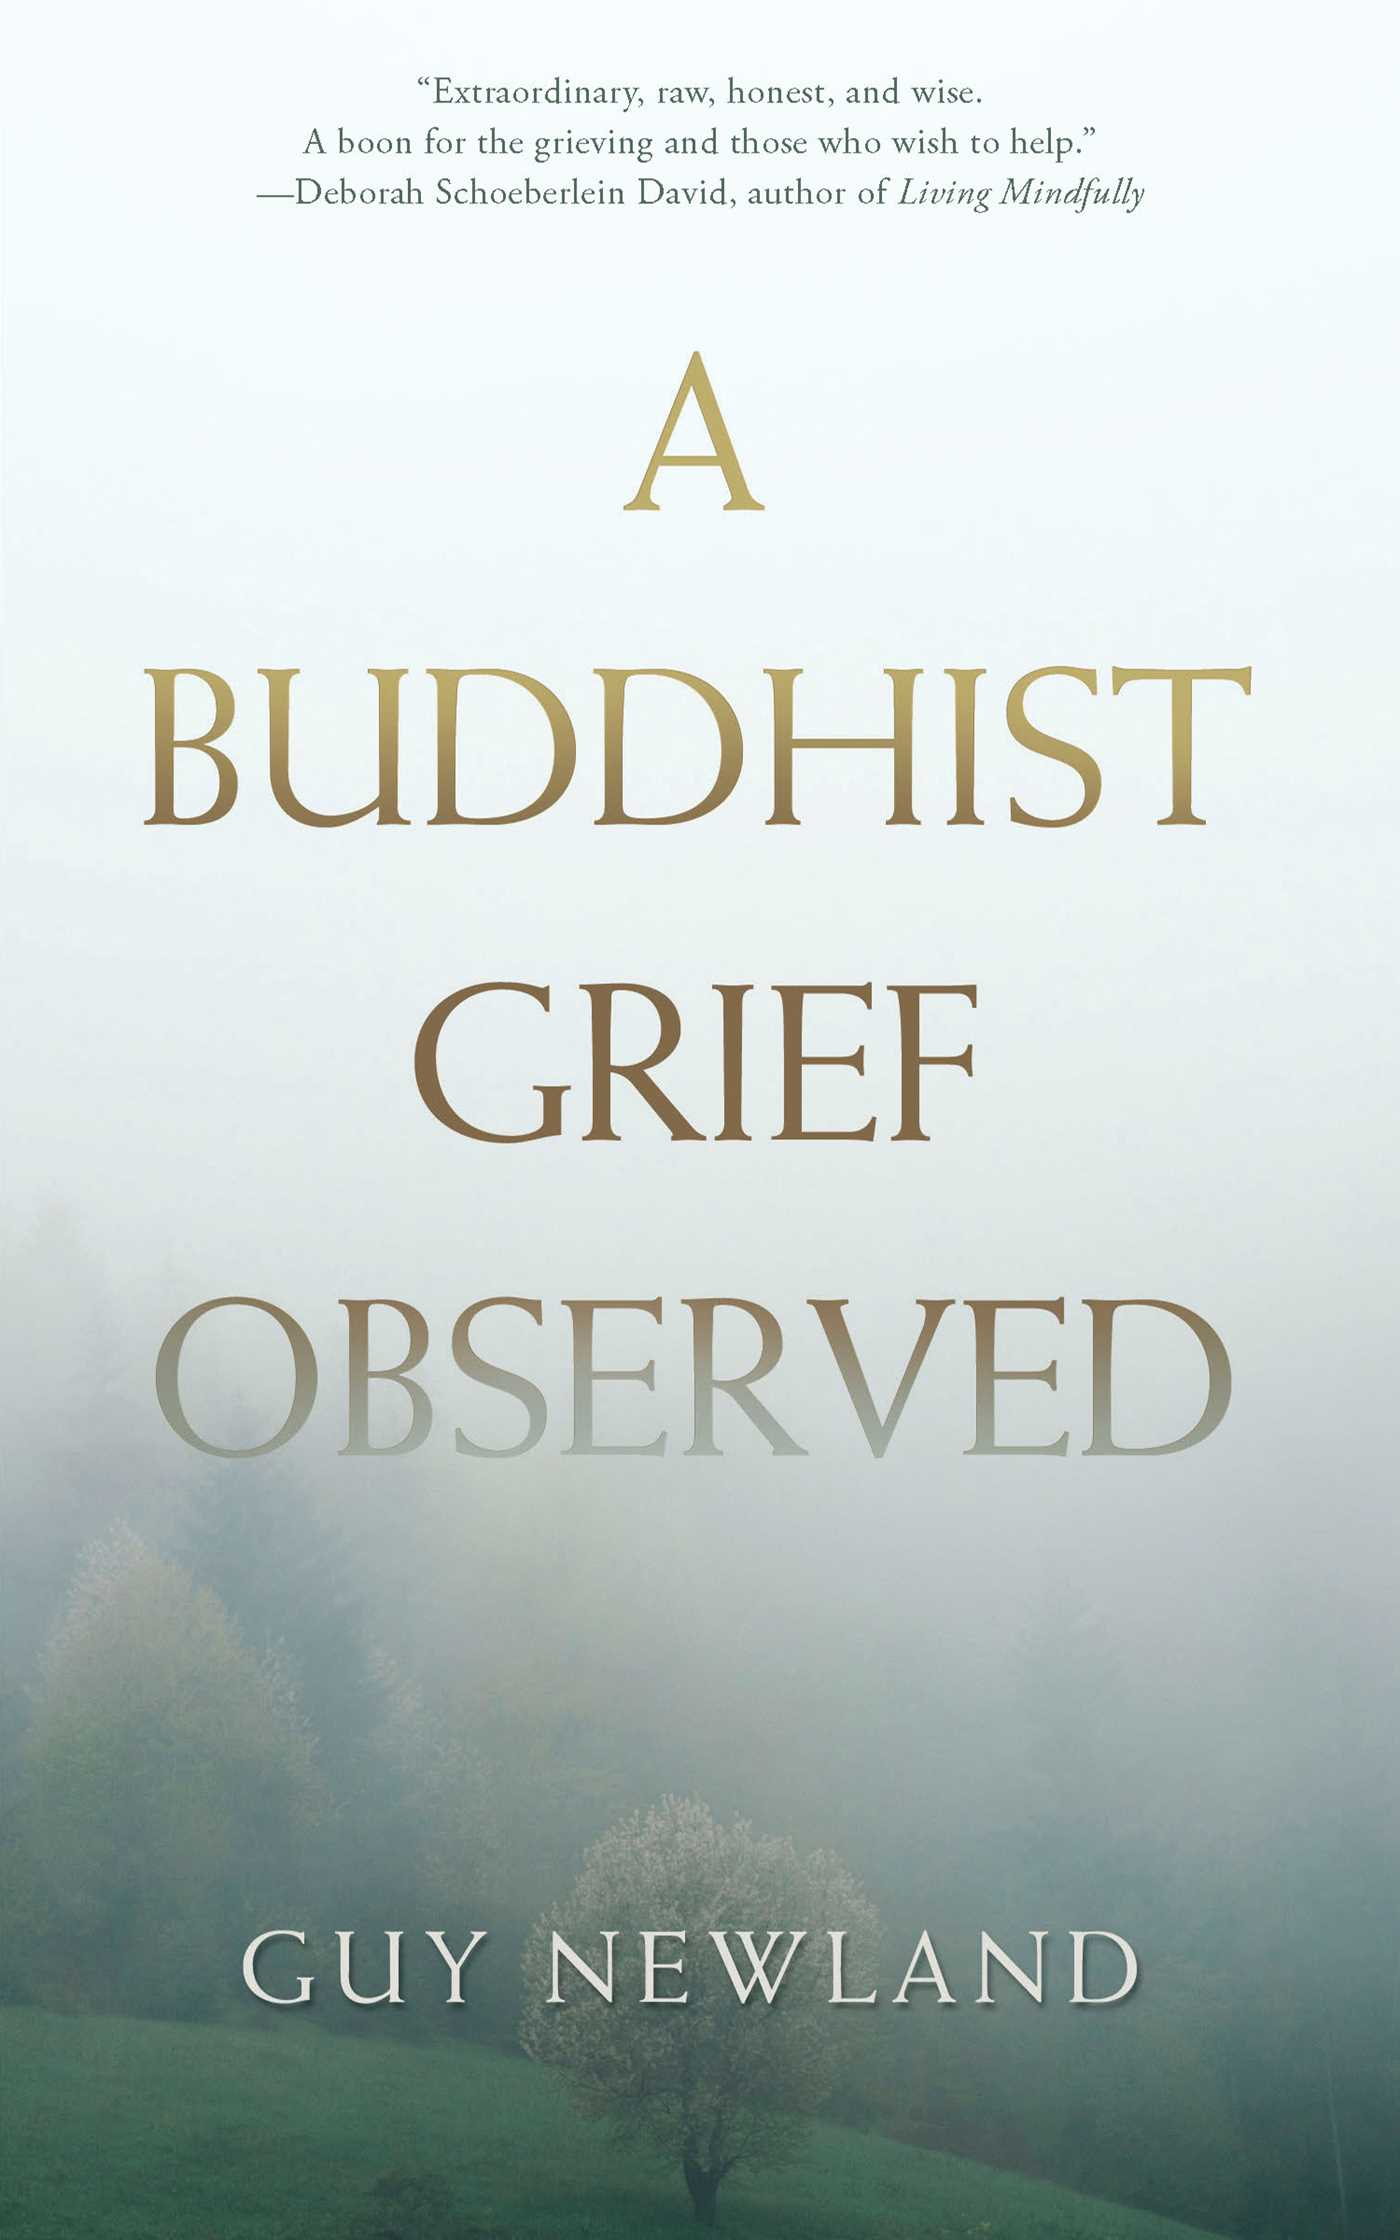 A buddhist grief observed 9781614293224 hr